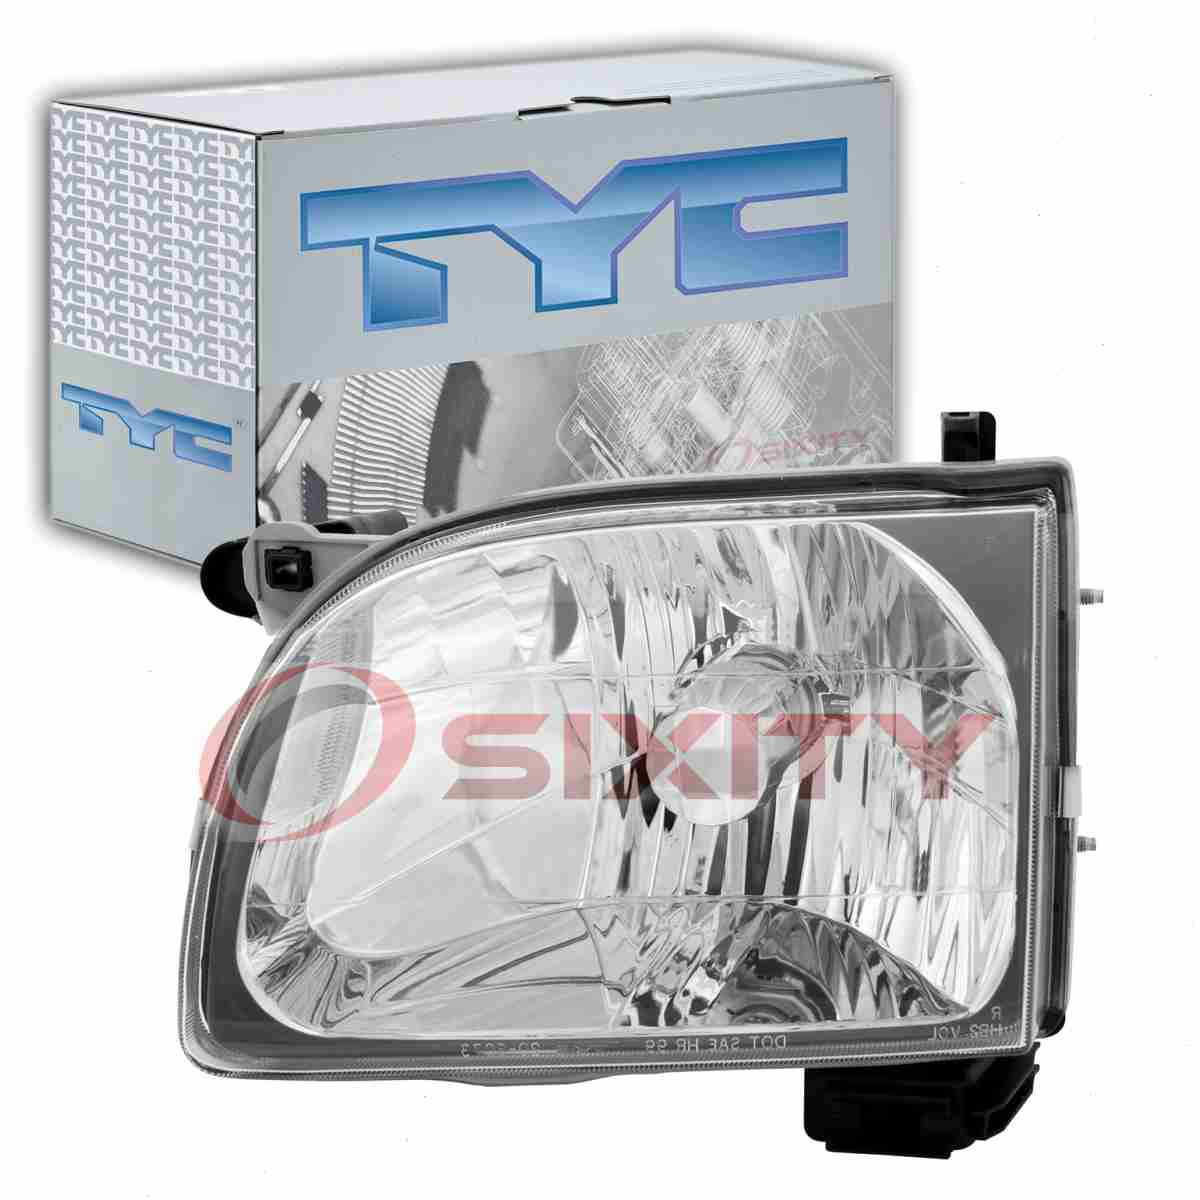 TYC 20-6074-00-1 Headlight Assembly for TO2502136 Partslink tv